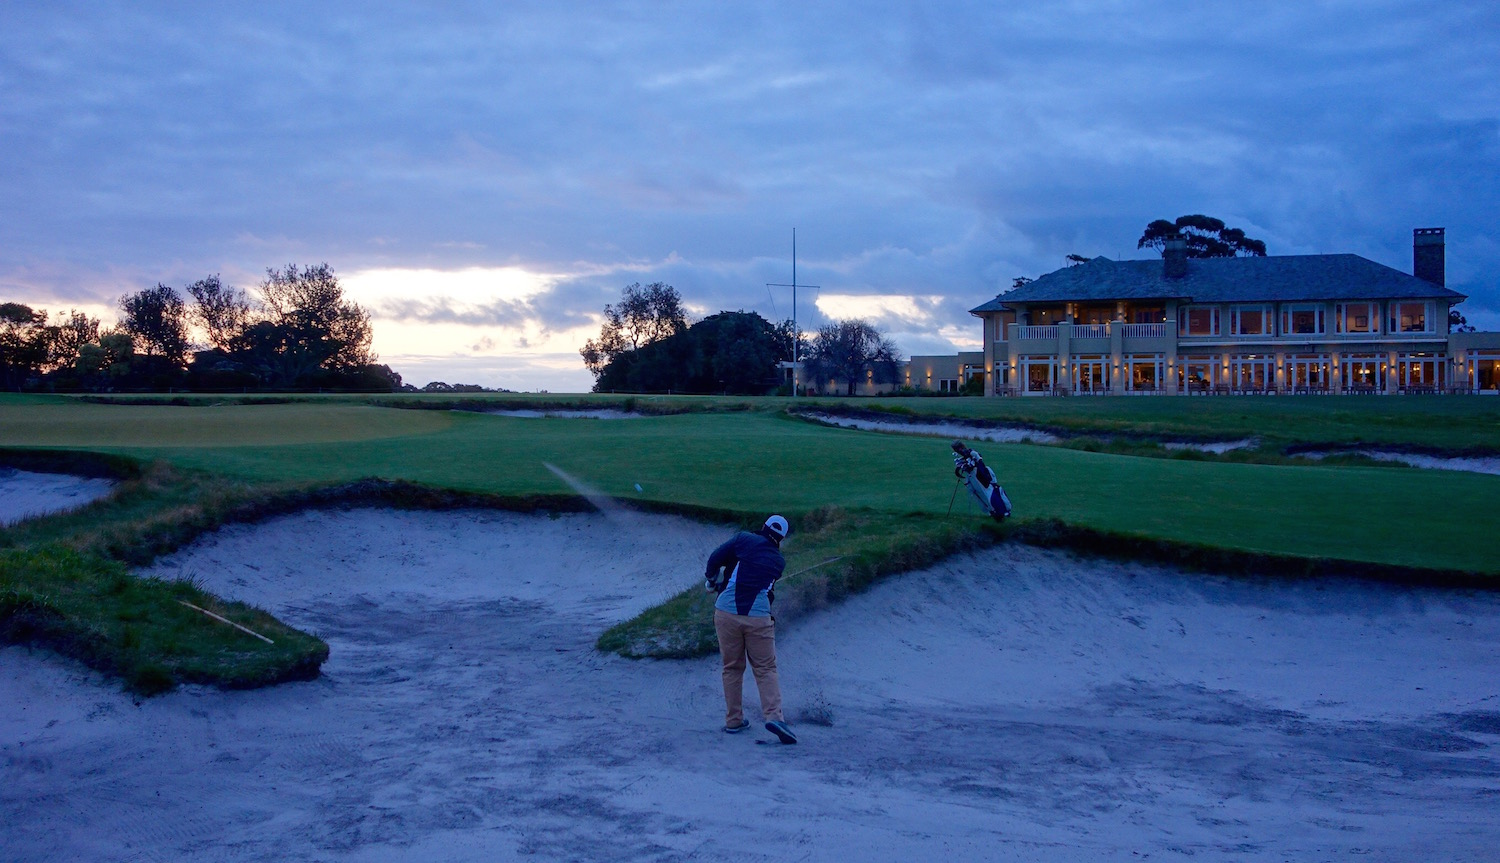 Royal Melbourne Golf Club - East Course Review - Graylyn Loomis